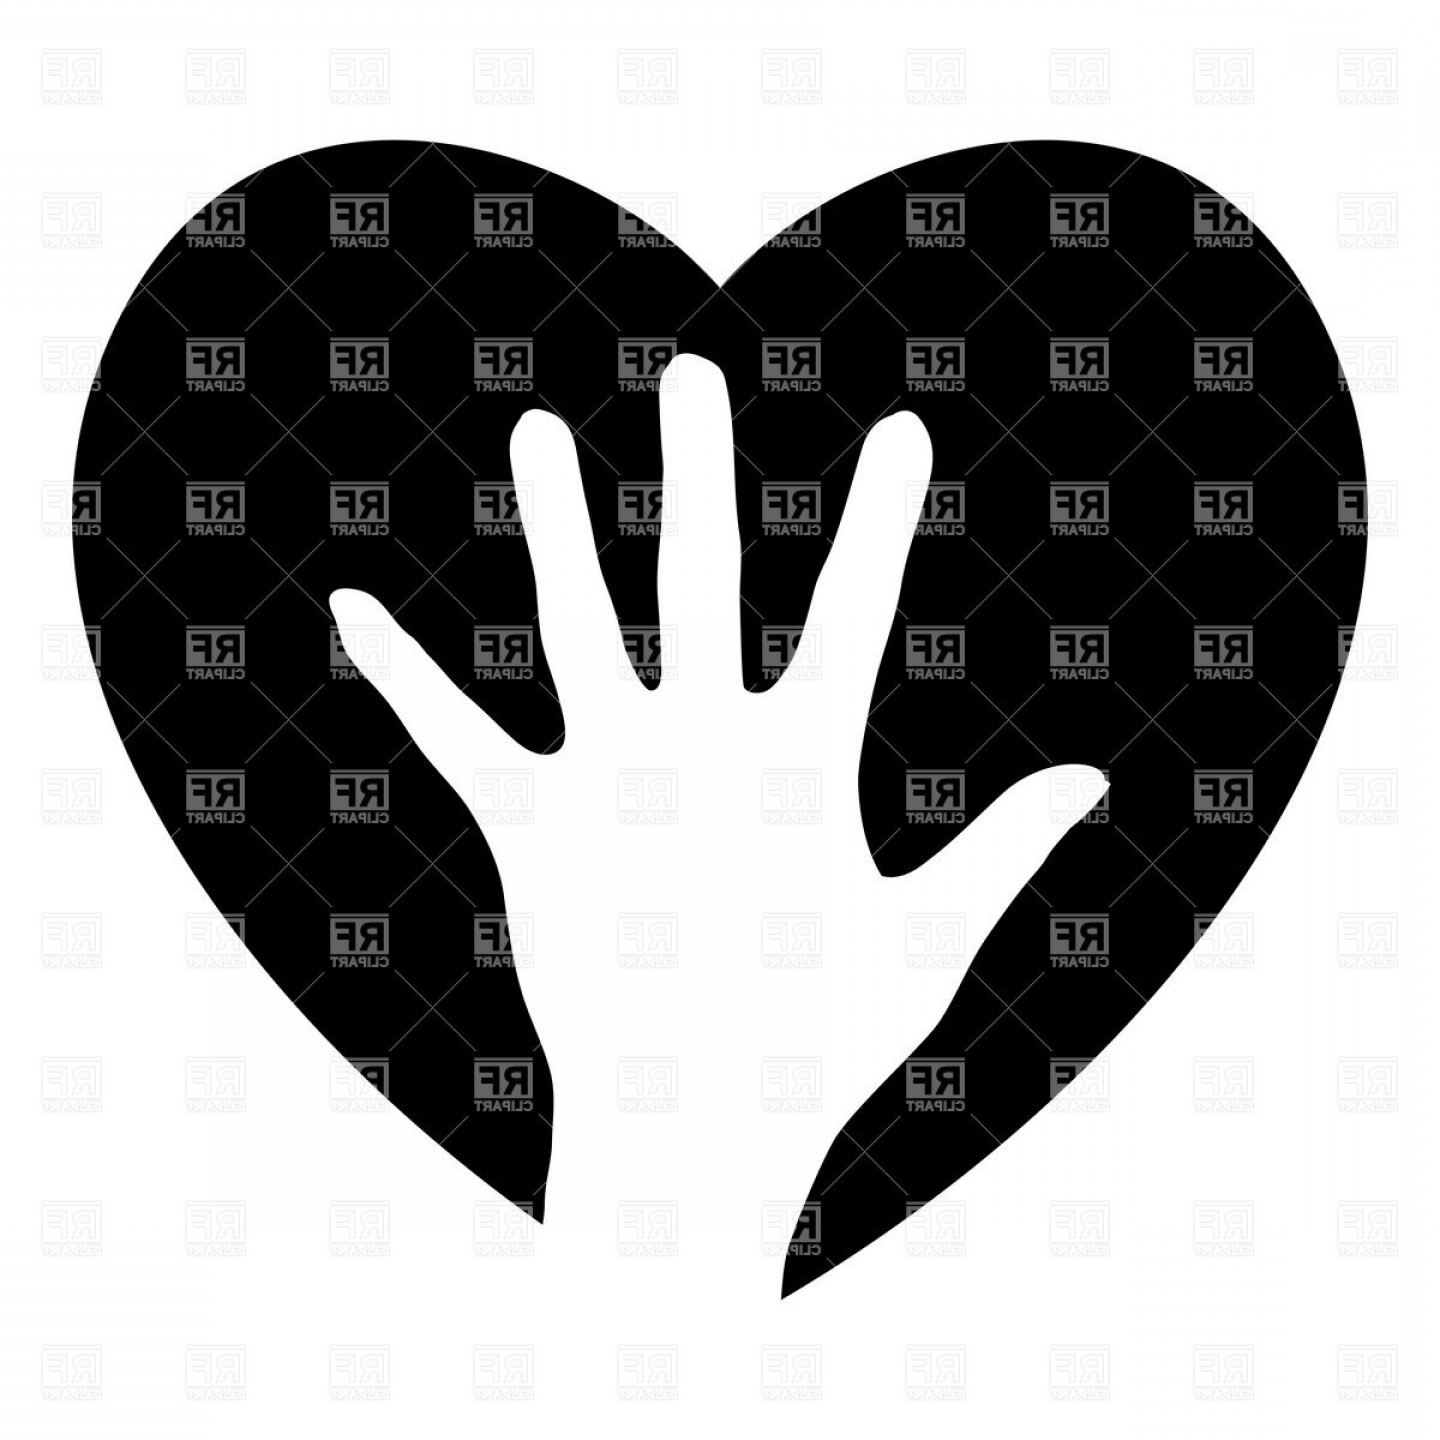 Heart In Hand Vector Clip Art: Helping Hand In The Heart Charity Symbol Vector Clipart